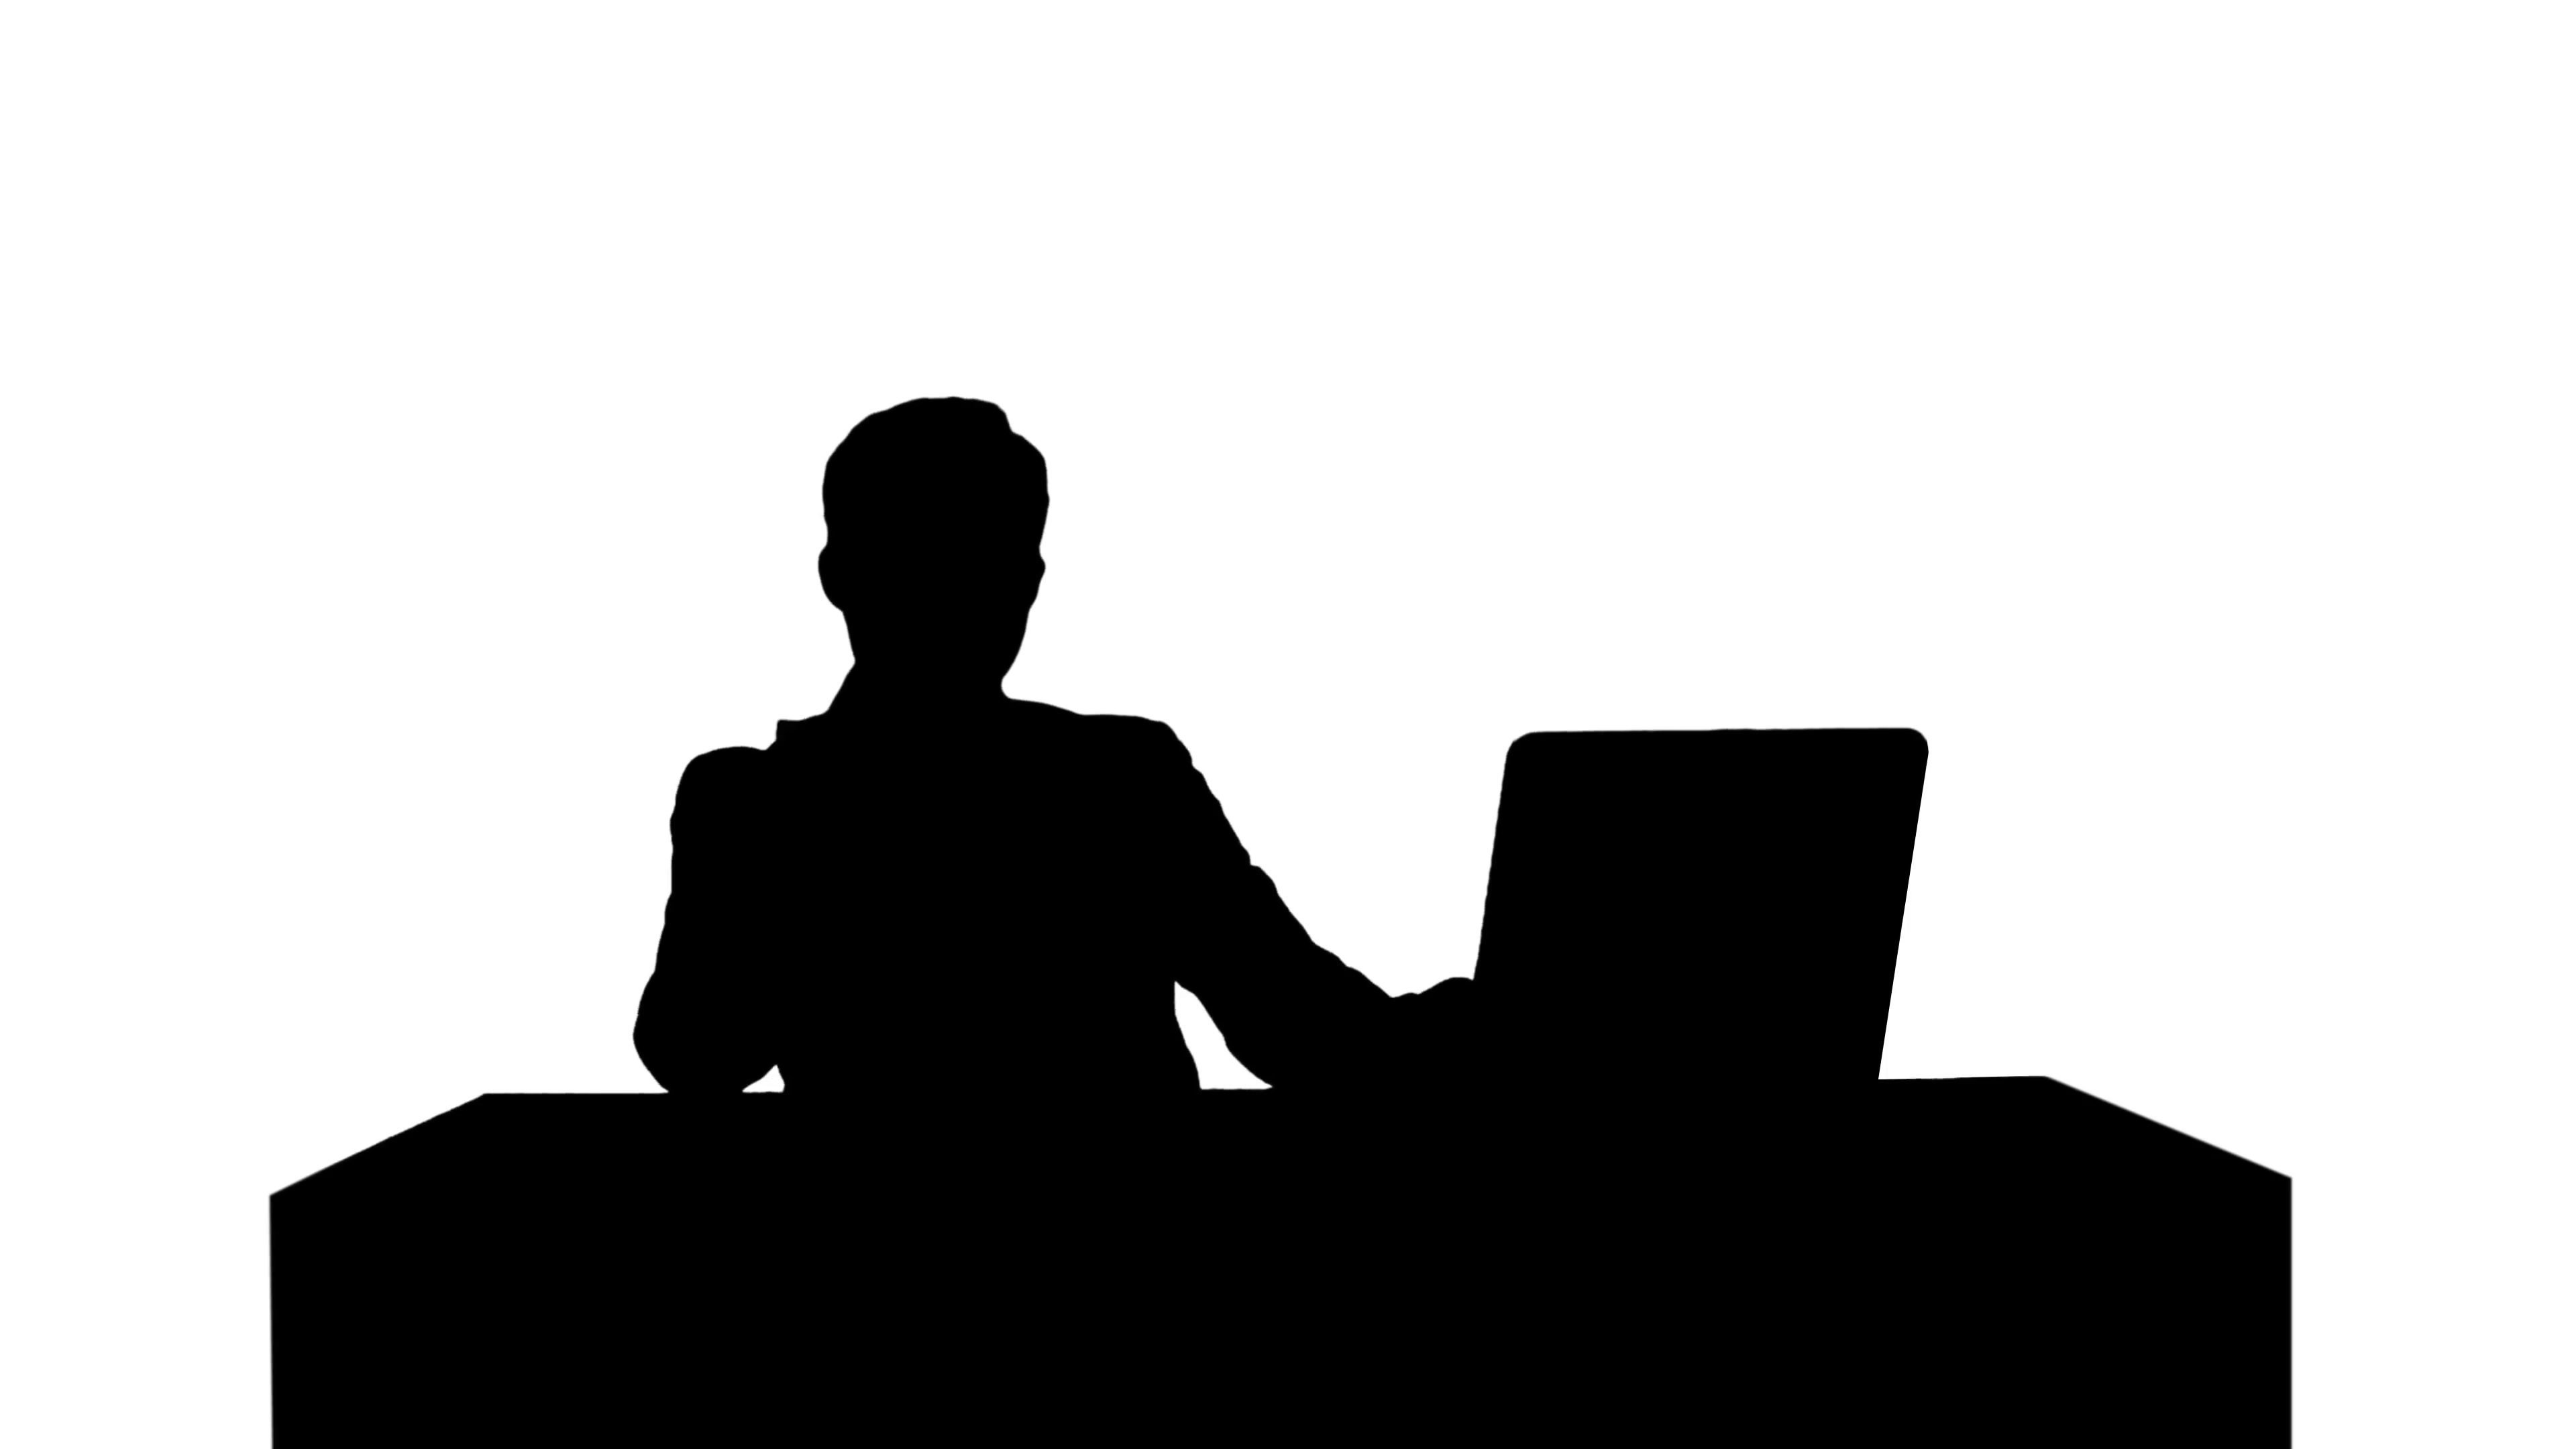 3840x2160 Silhouette Portrait Of A Smiling Businessman Talking On His